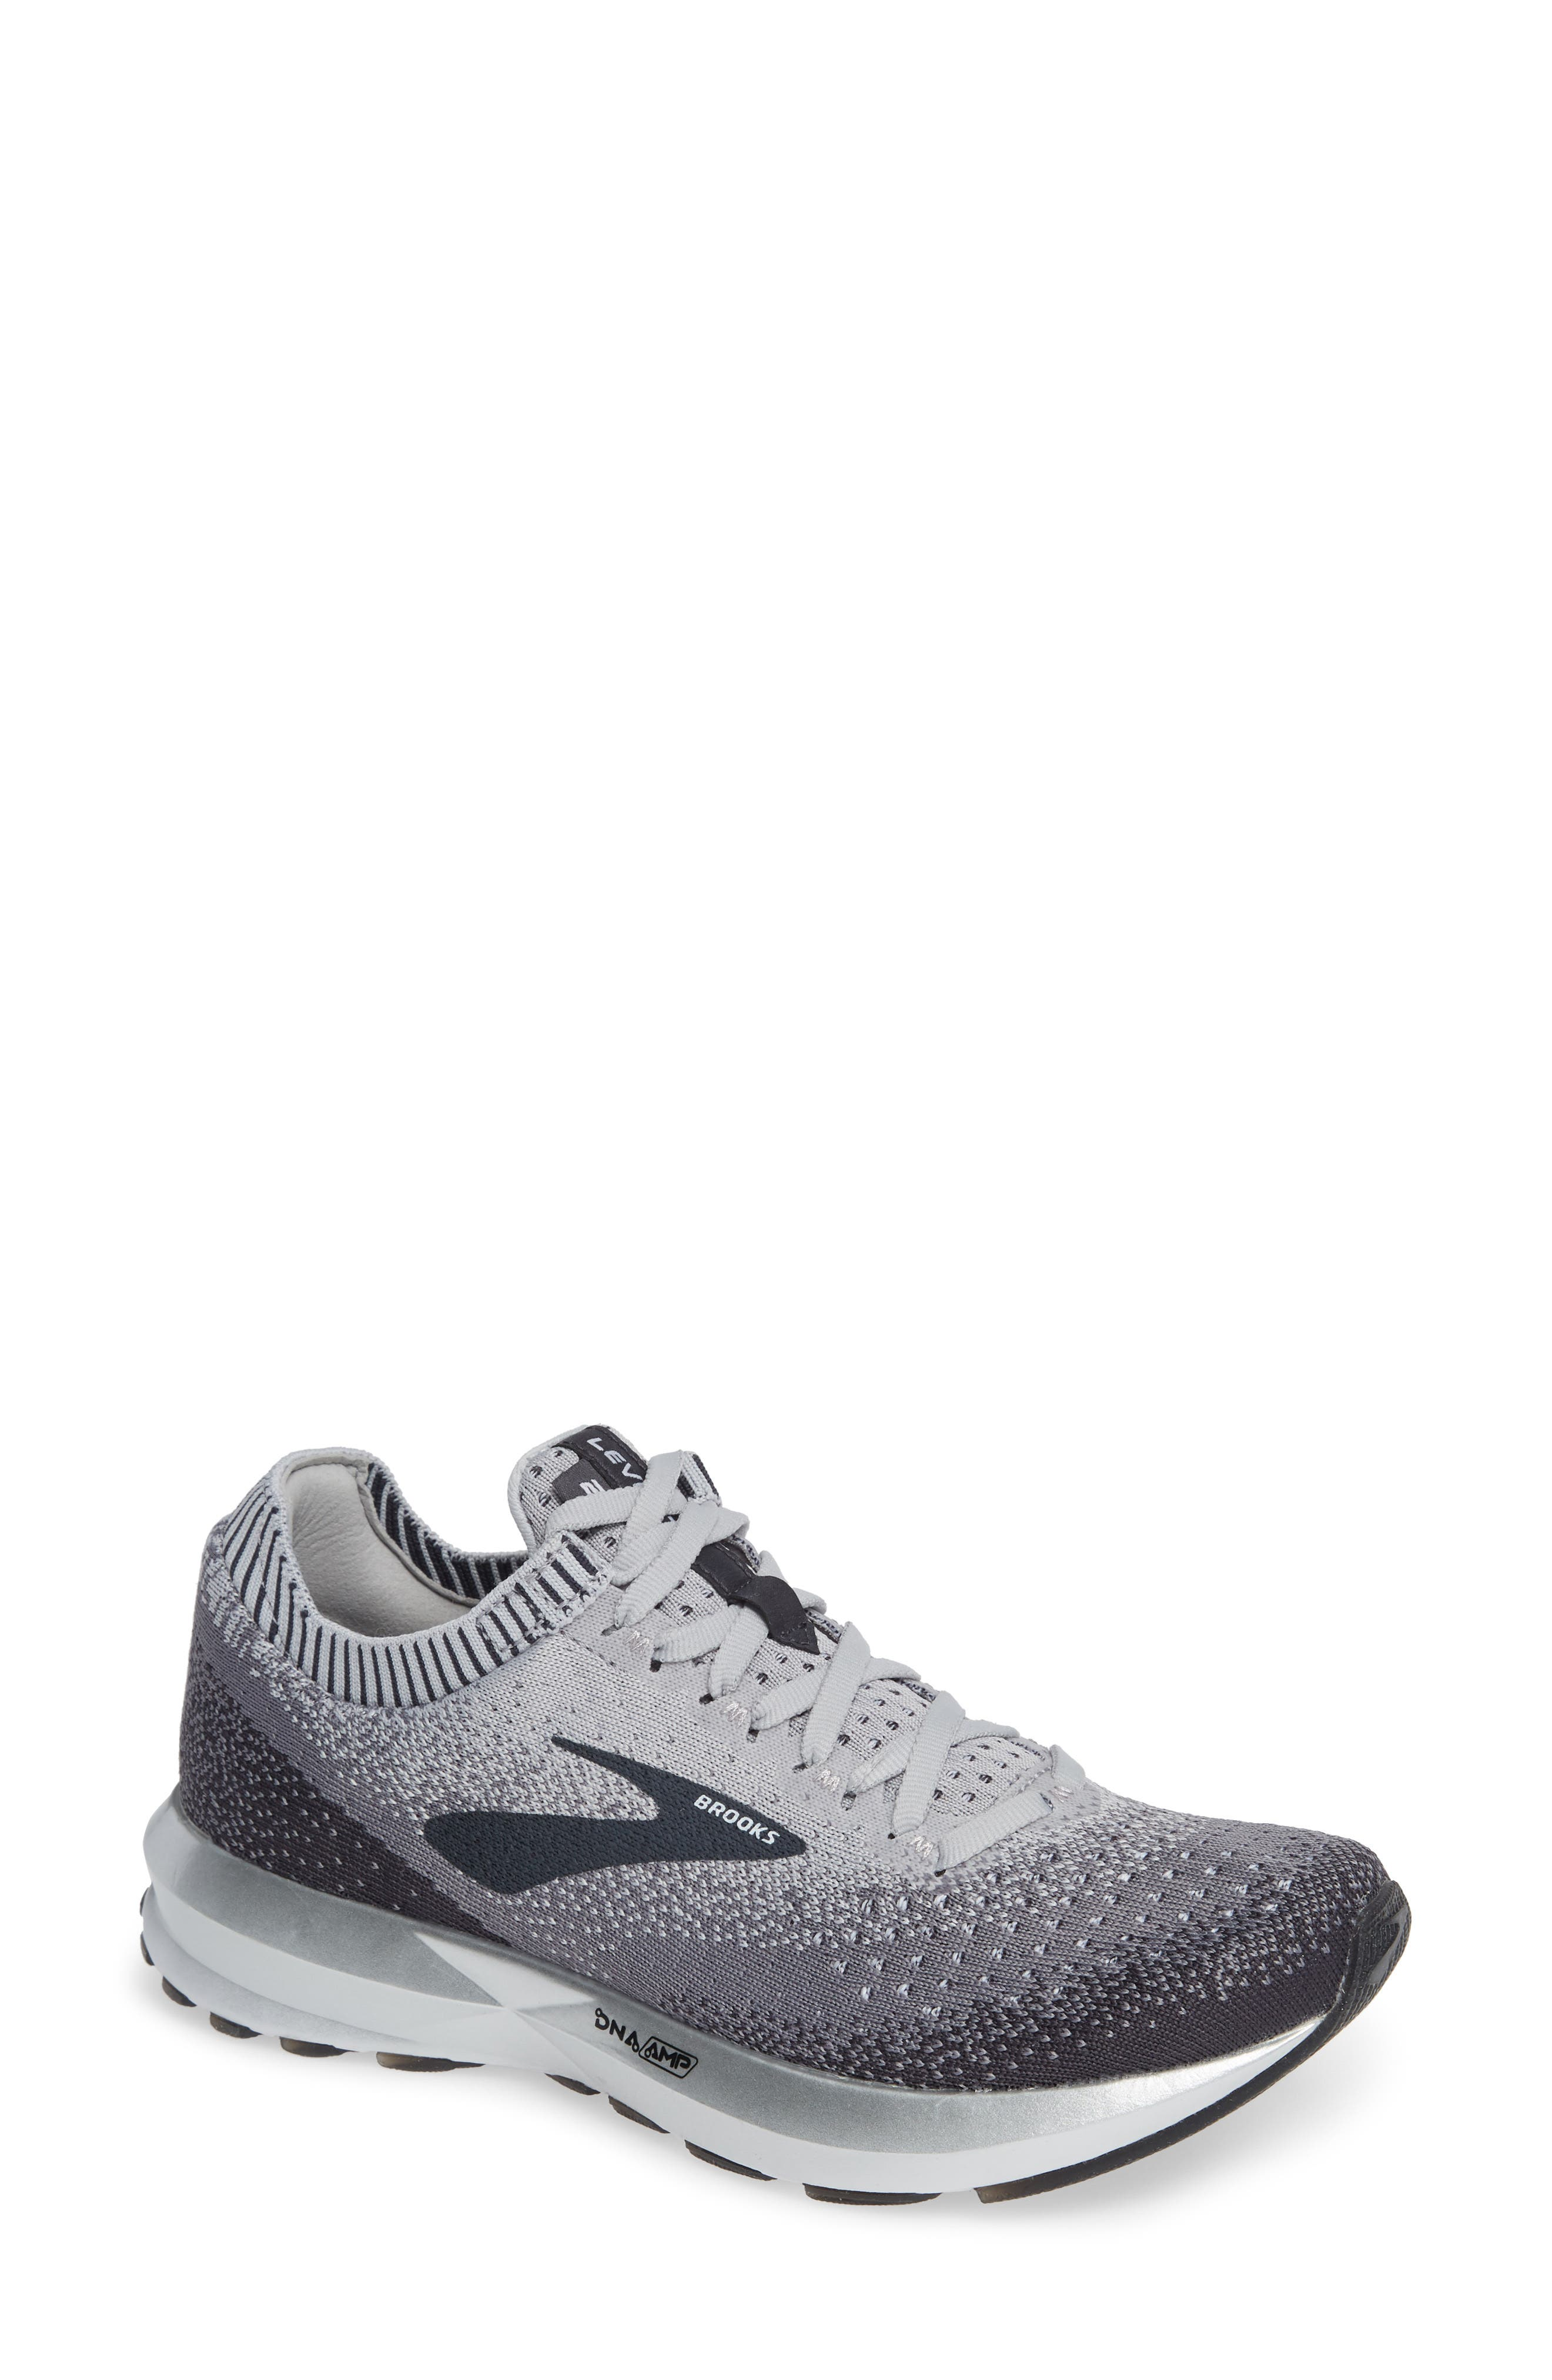 Levitate 2 Running Shoe,                         Main,                         color, GREY/ EBONY/ WHITE